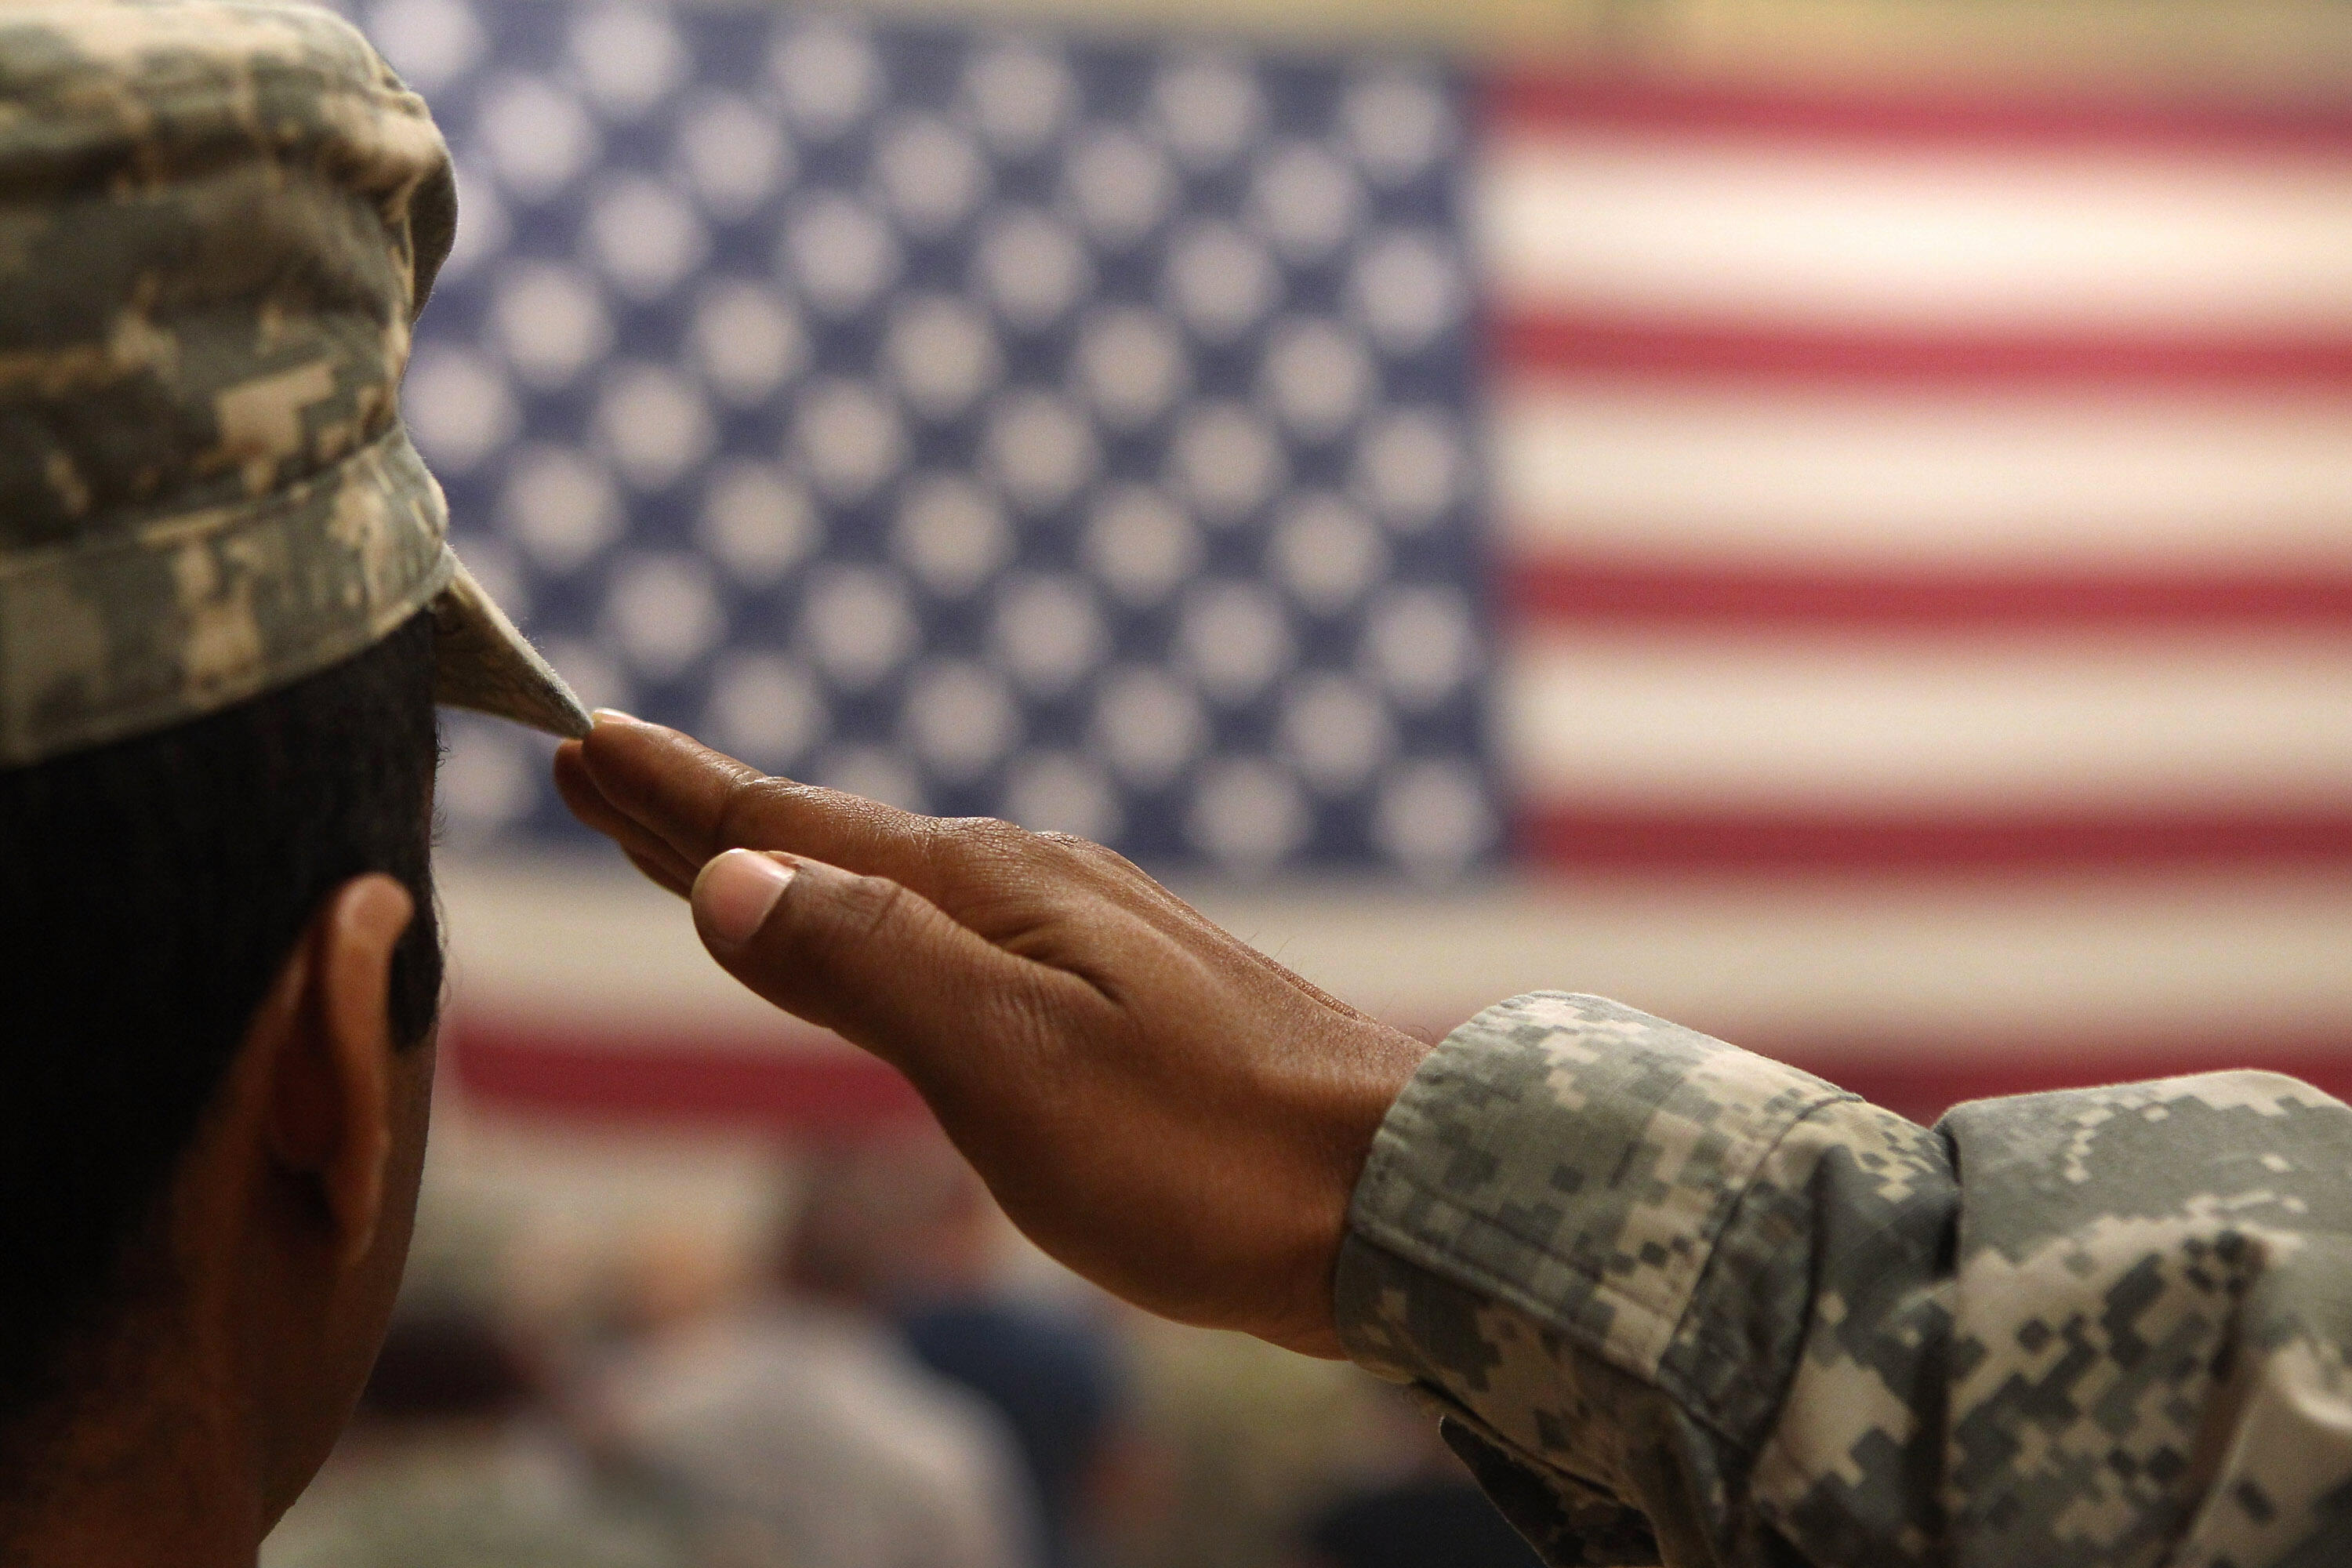 FORT CARSON, CO - JUNE 15:  A soldier salutes the flag during a welcome home ceremony for troops arriving from Afghanistan on June 15, 2011 to Fort Carson, Colorado. More than 500 soldiers from the 1st Brigade Combat Team returned home following a year of